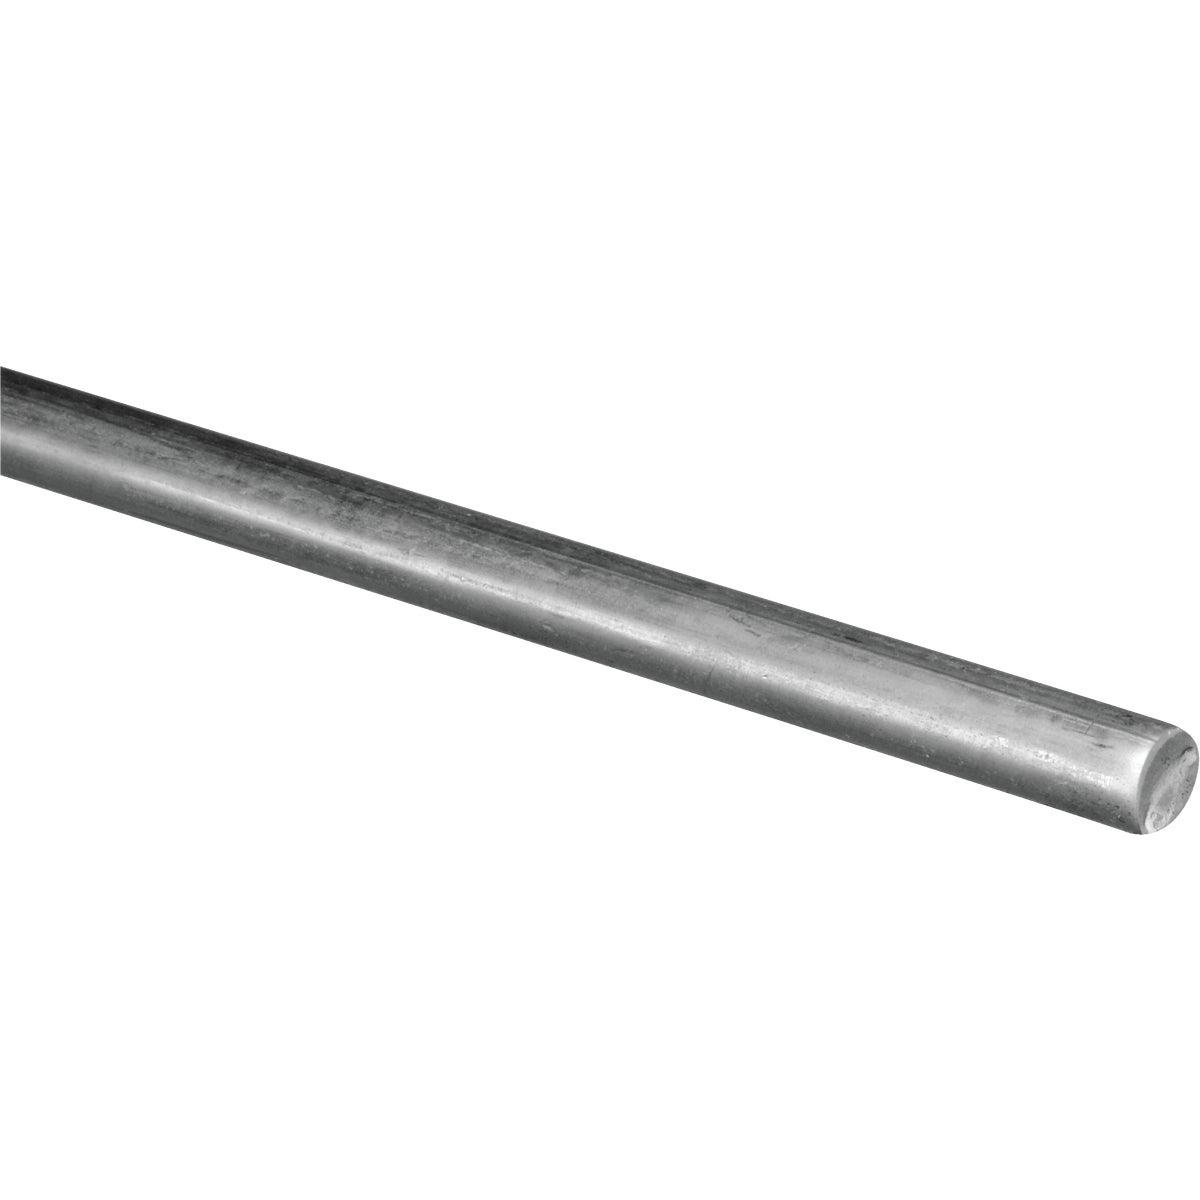 3/16X3' ROUND STEEL ROD - N179754 by National Mfg Co